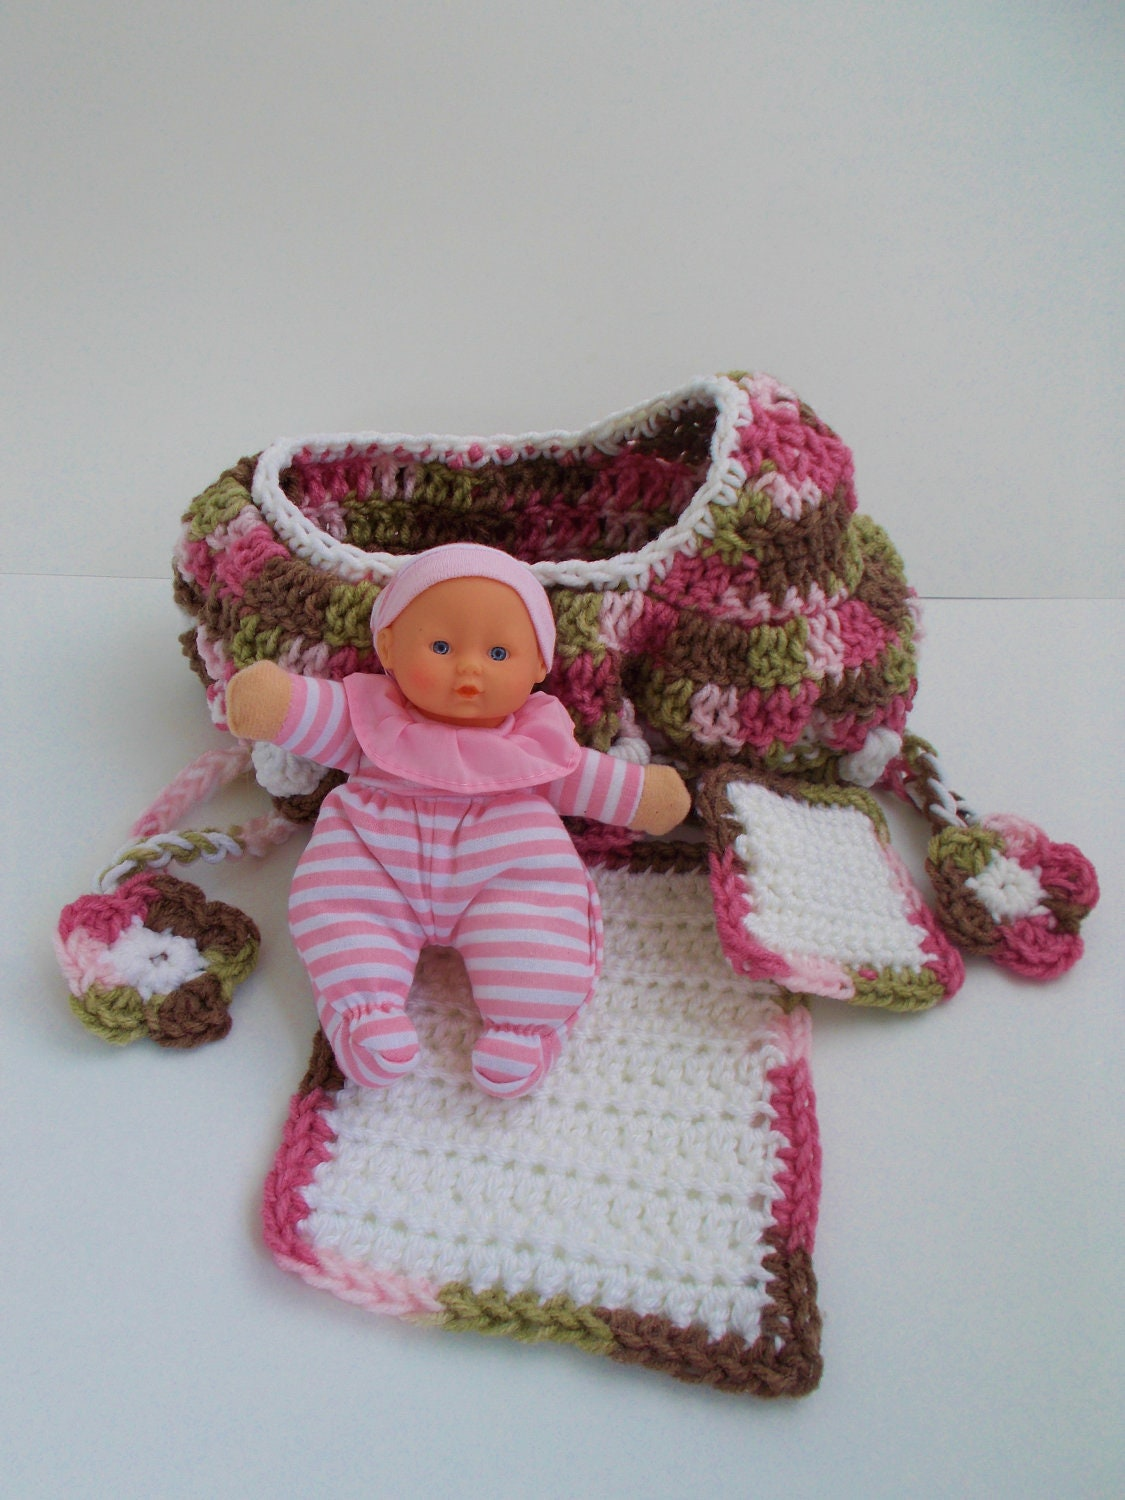 Crochet Cradle Purse Baby Doll Blanket and by fifthofanickel